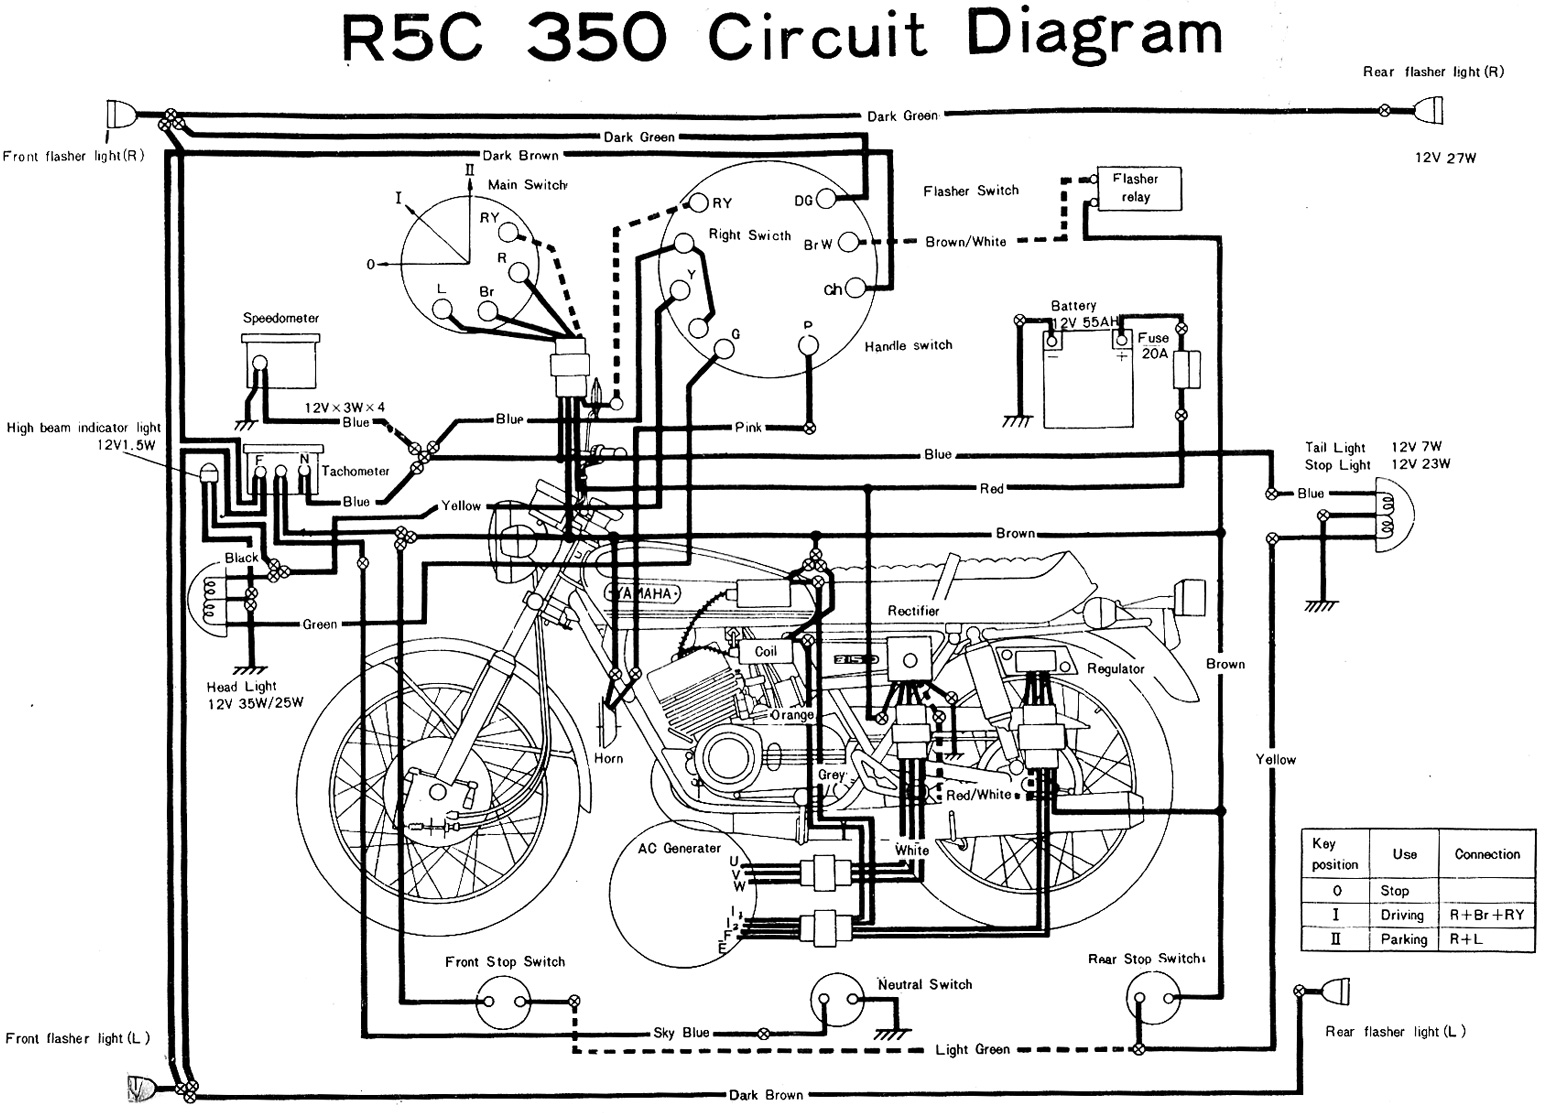 hight resolution of r5c 350